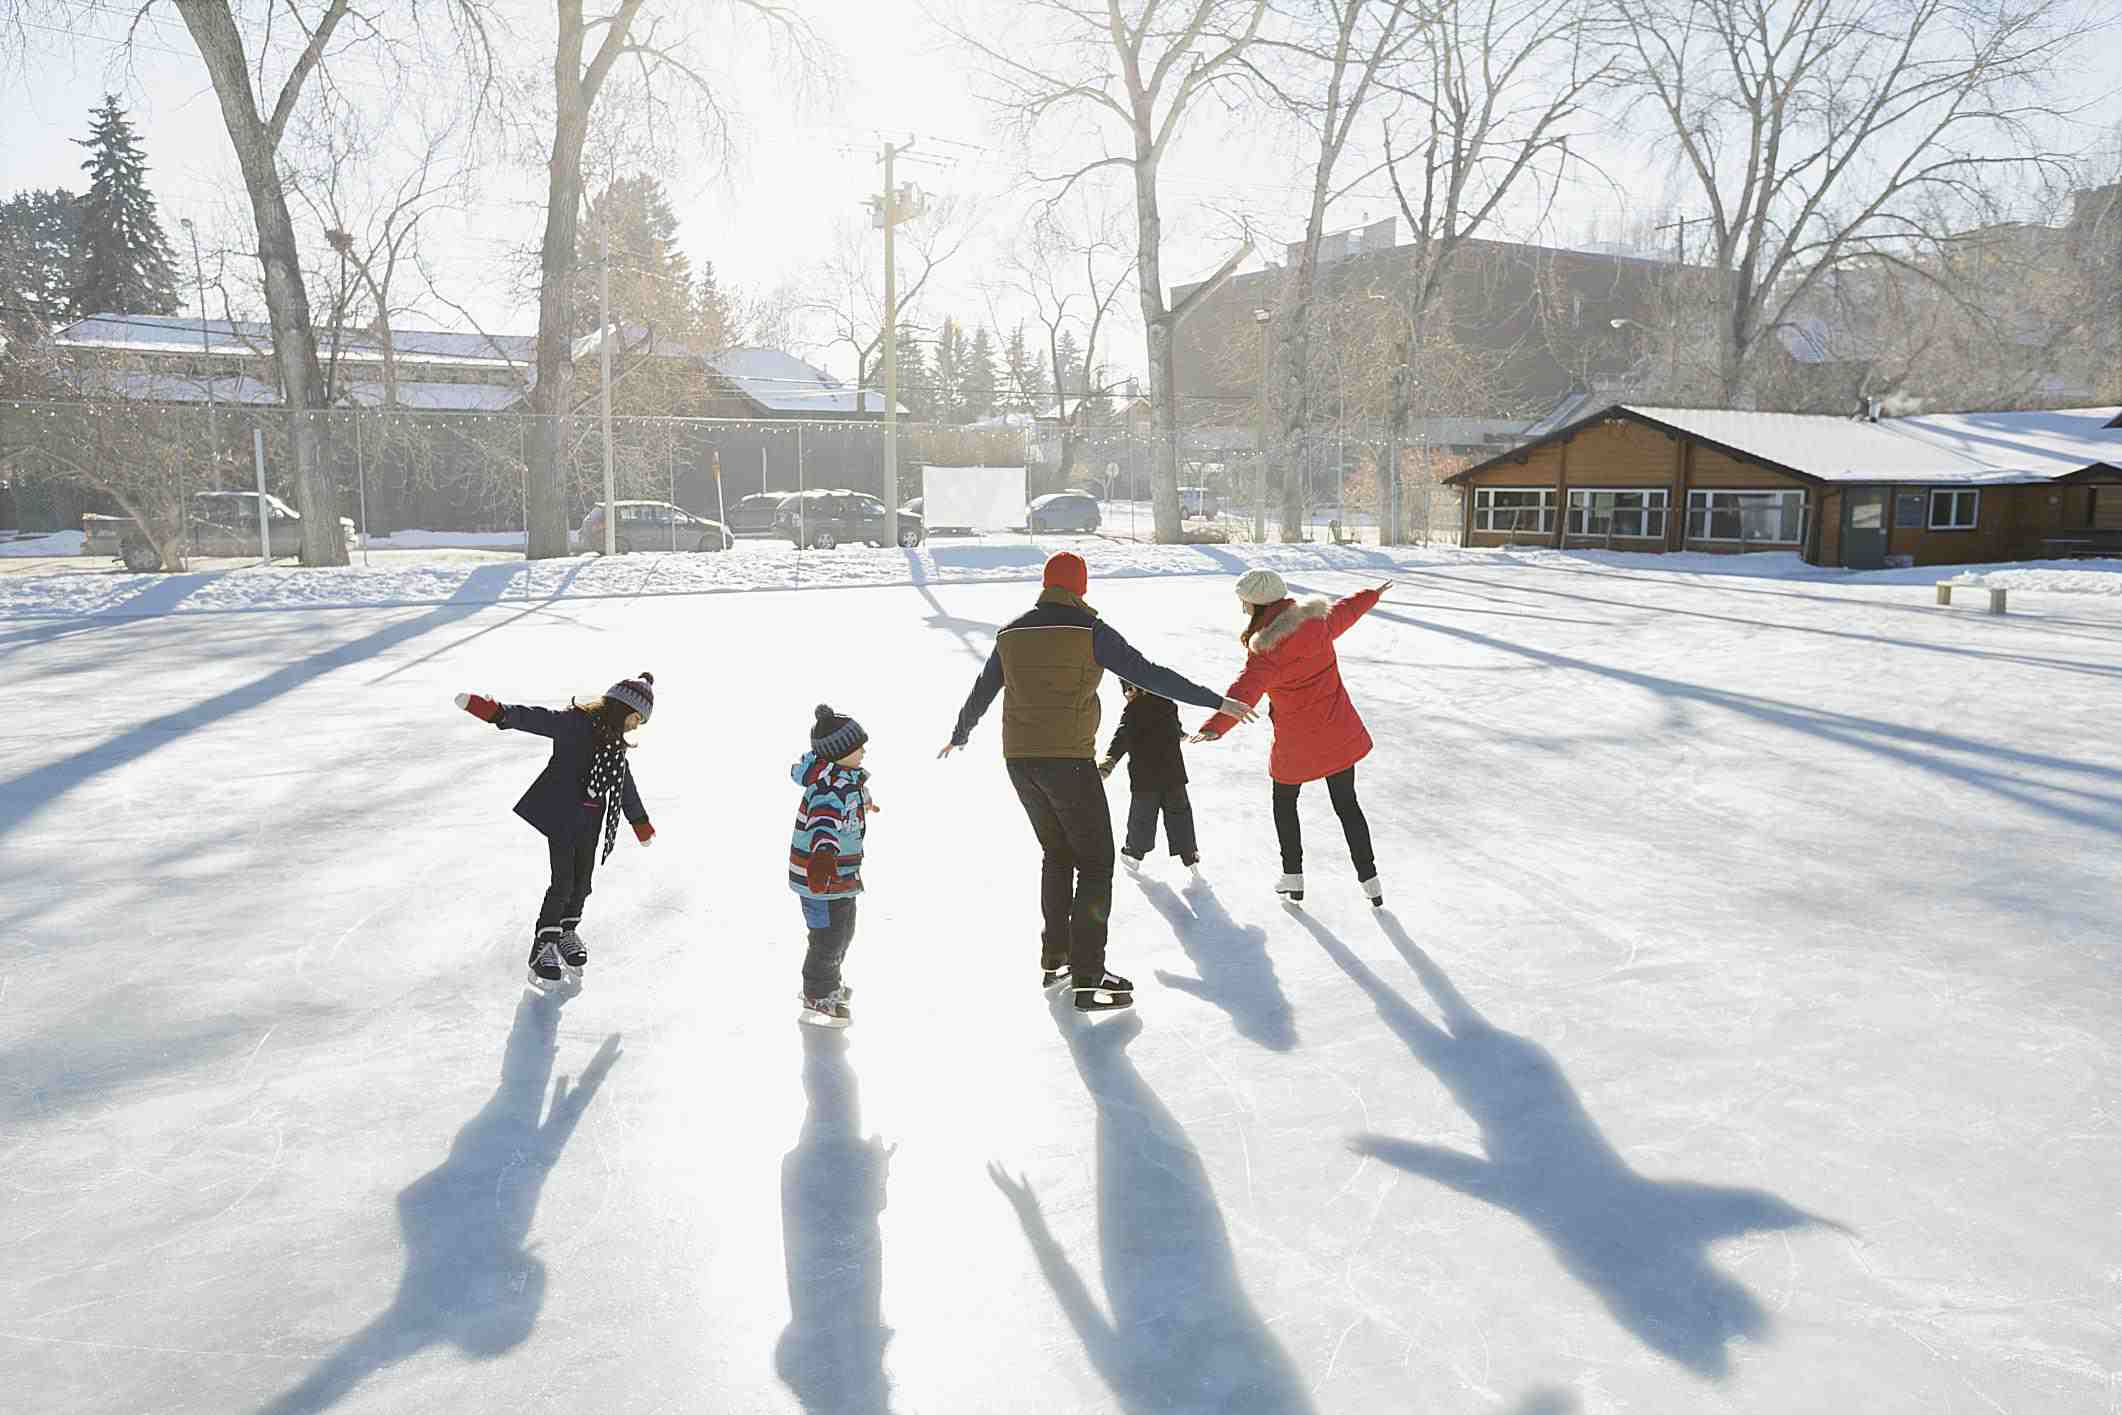 Ice Skating - Hero Images - GettyImages-485207457